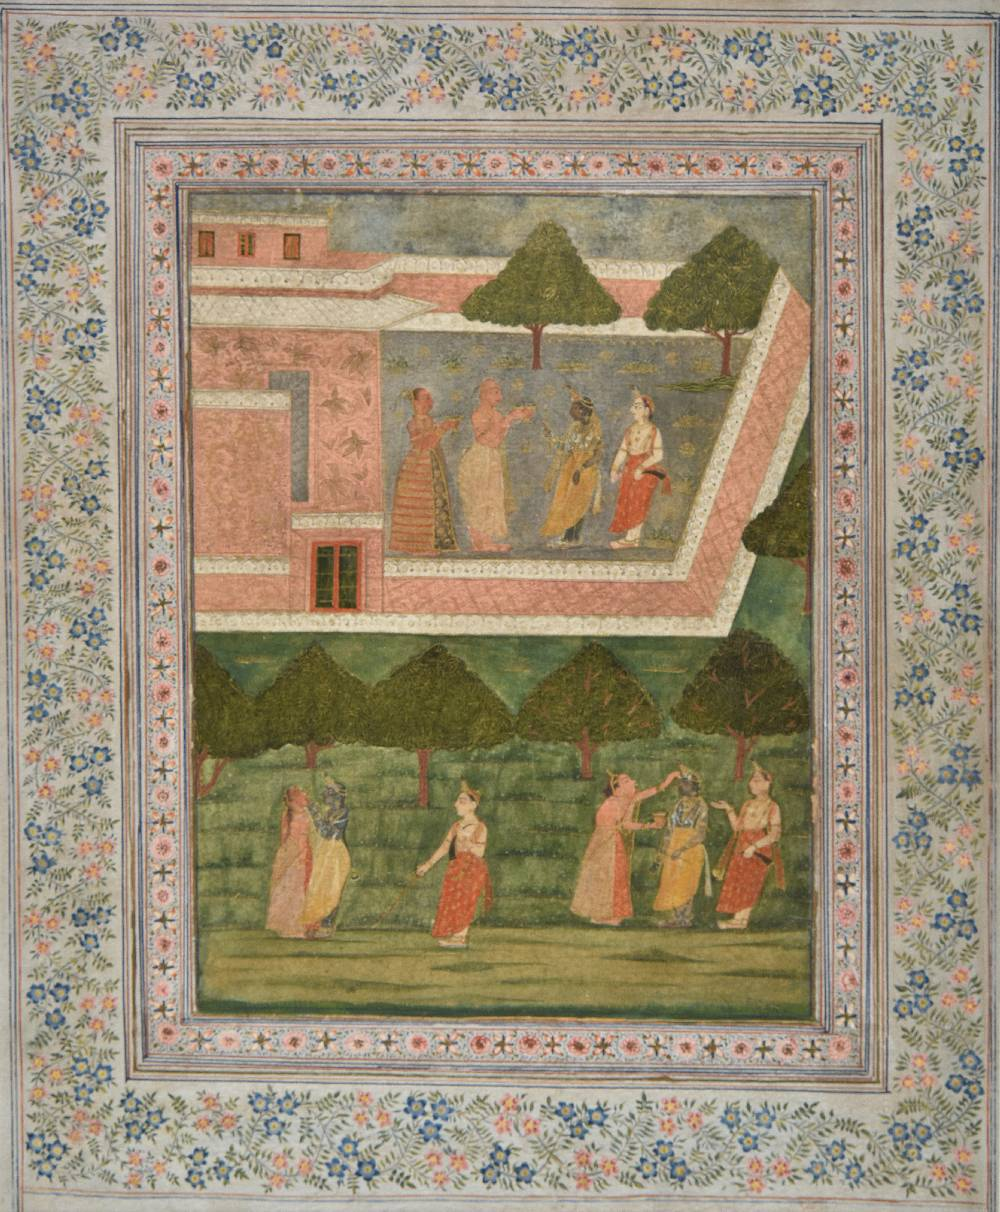 Lot 53 - *Mughal School. Court scene with female annointing ceremonies, 18th century, pen, ink and